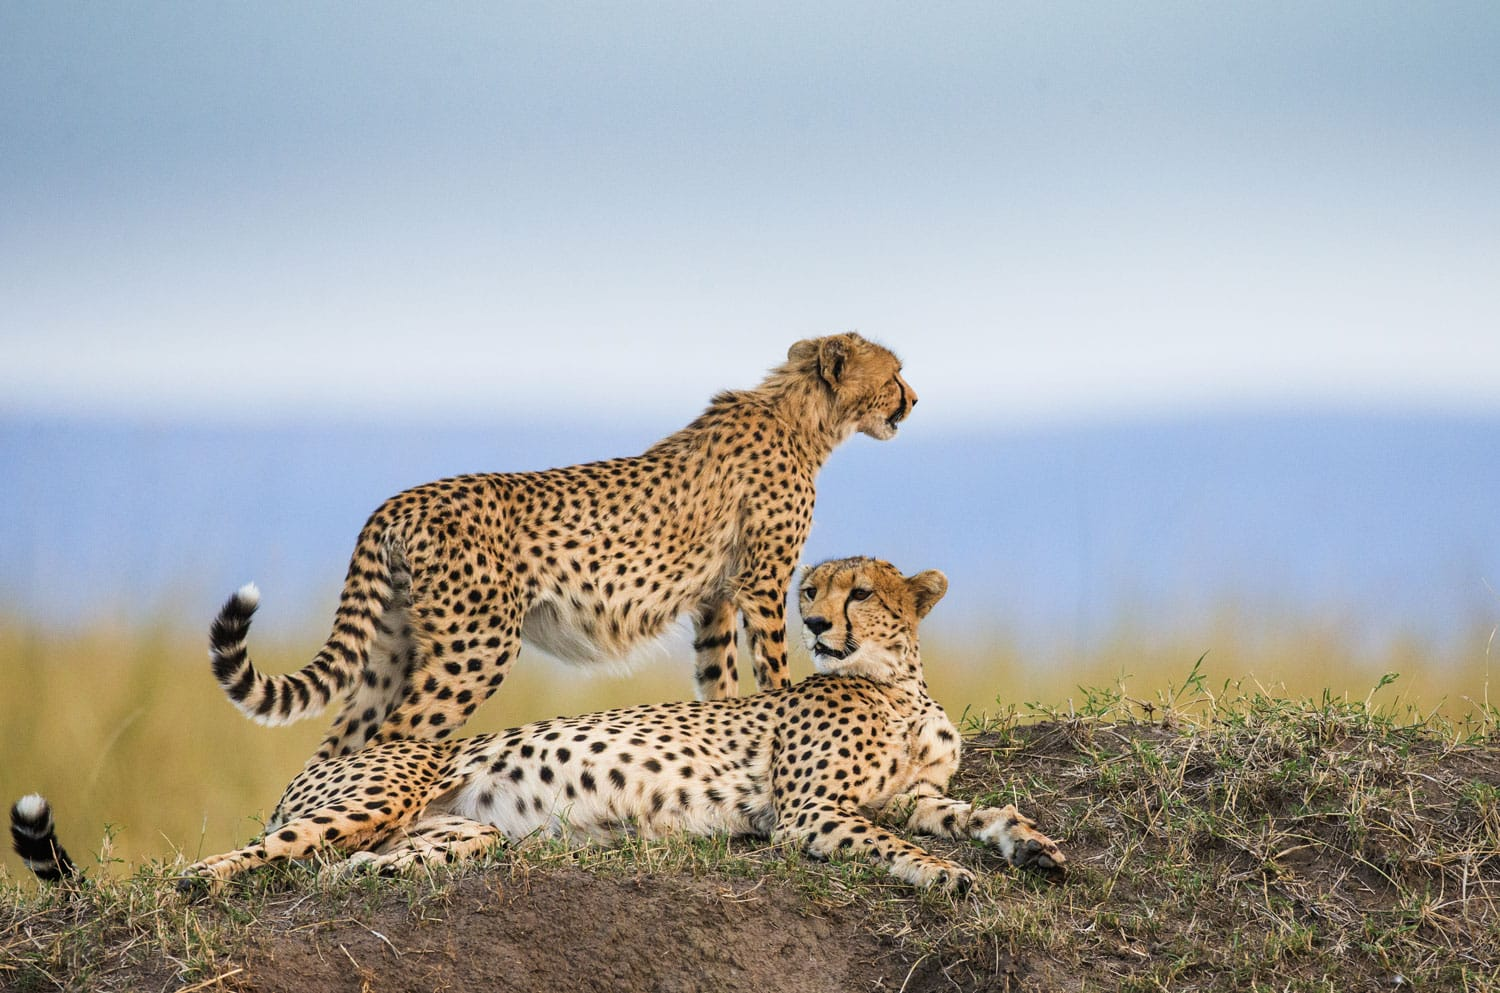 Three cheetahs in the Maasai Mara National Park, Africa